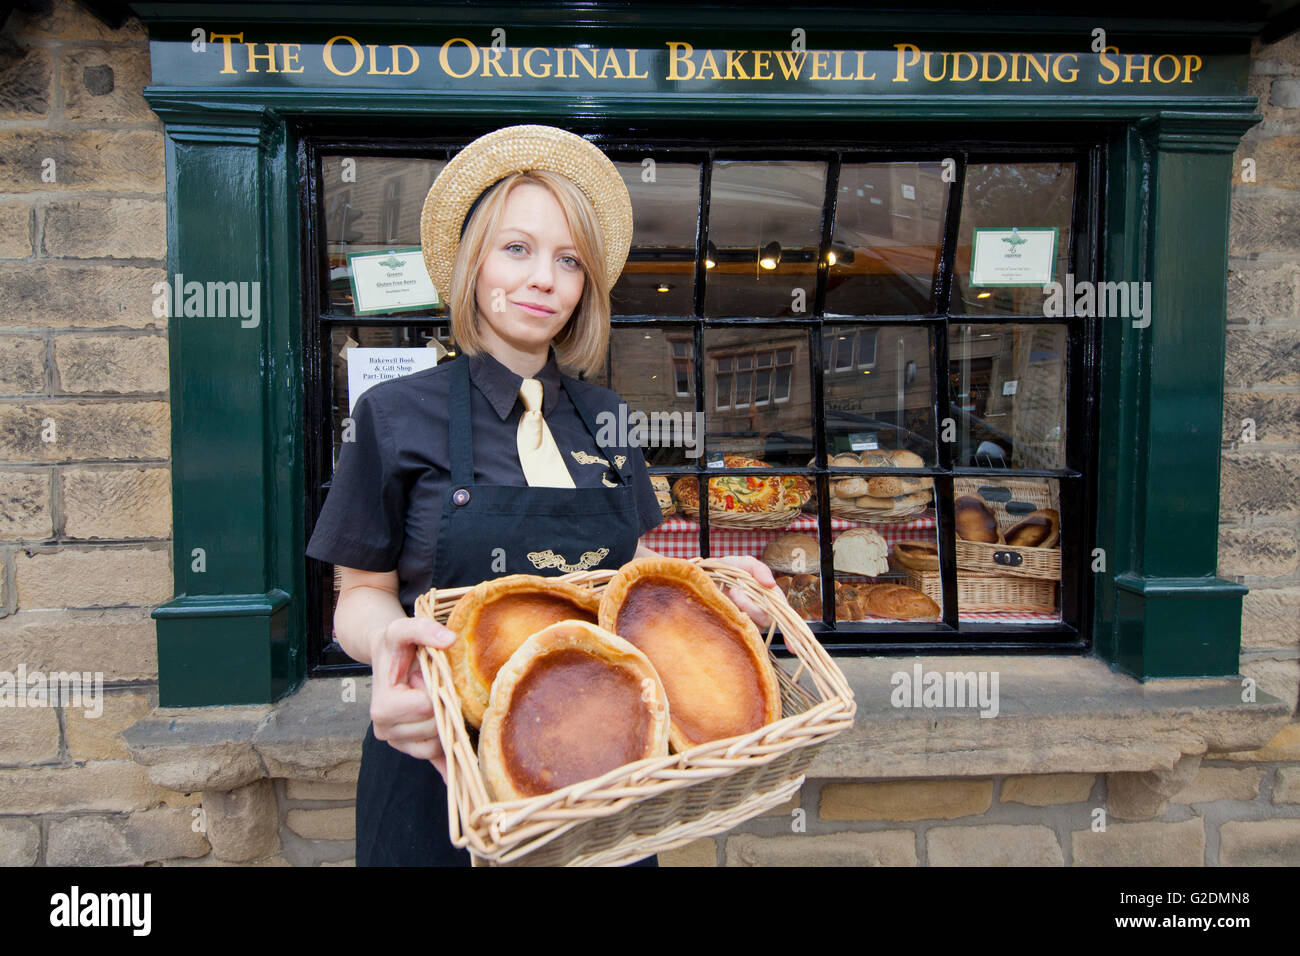 The Old Original Bakewell Pudding Shop - Bakewell Puddings, Bakewell, Derbyshire - Stock Image